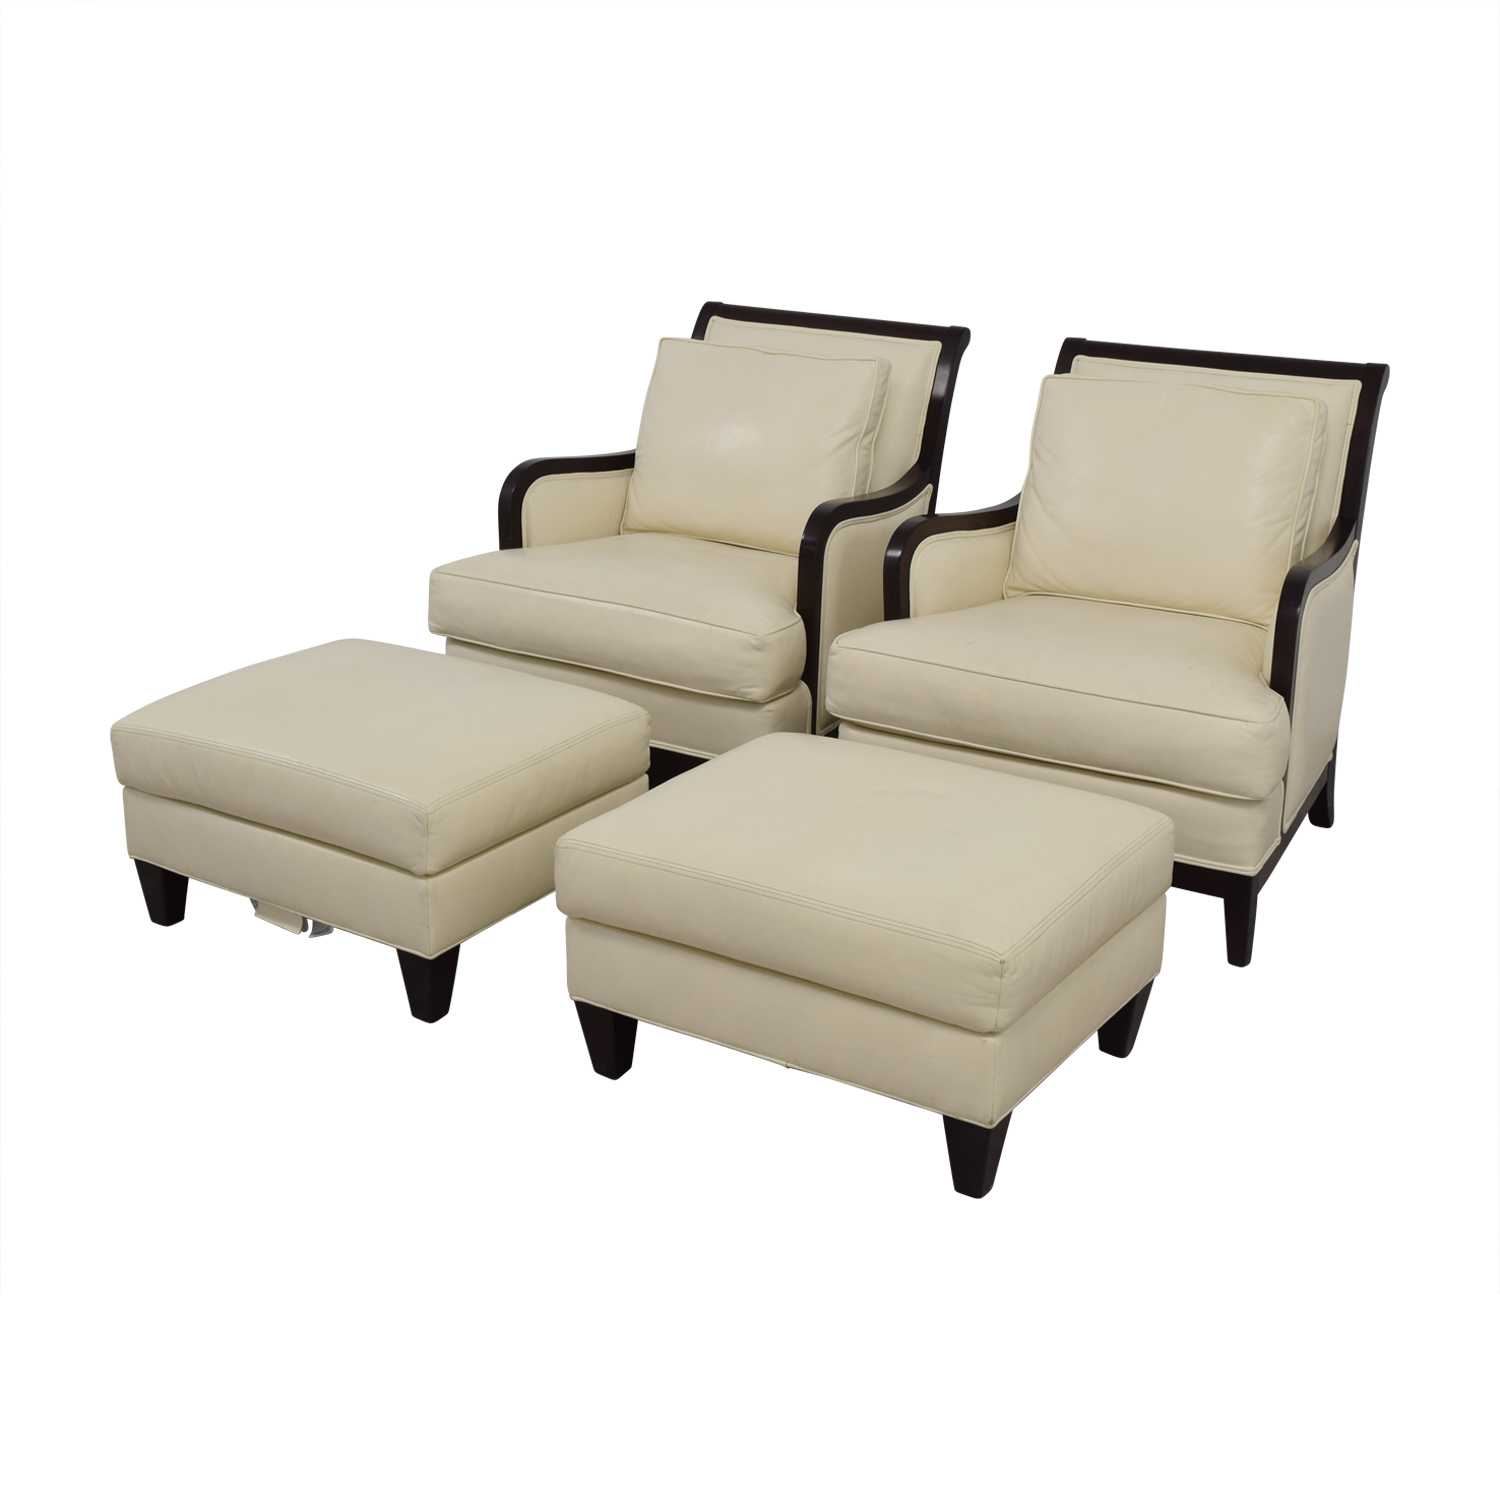 small spaces storage chair with living double ottoman floor in laminate table tiles furniture leather sofa chairs room fabric ottomans wooden tray and